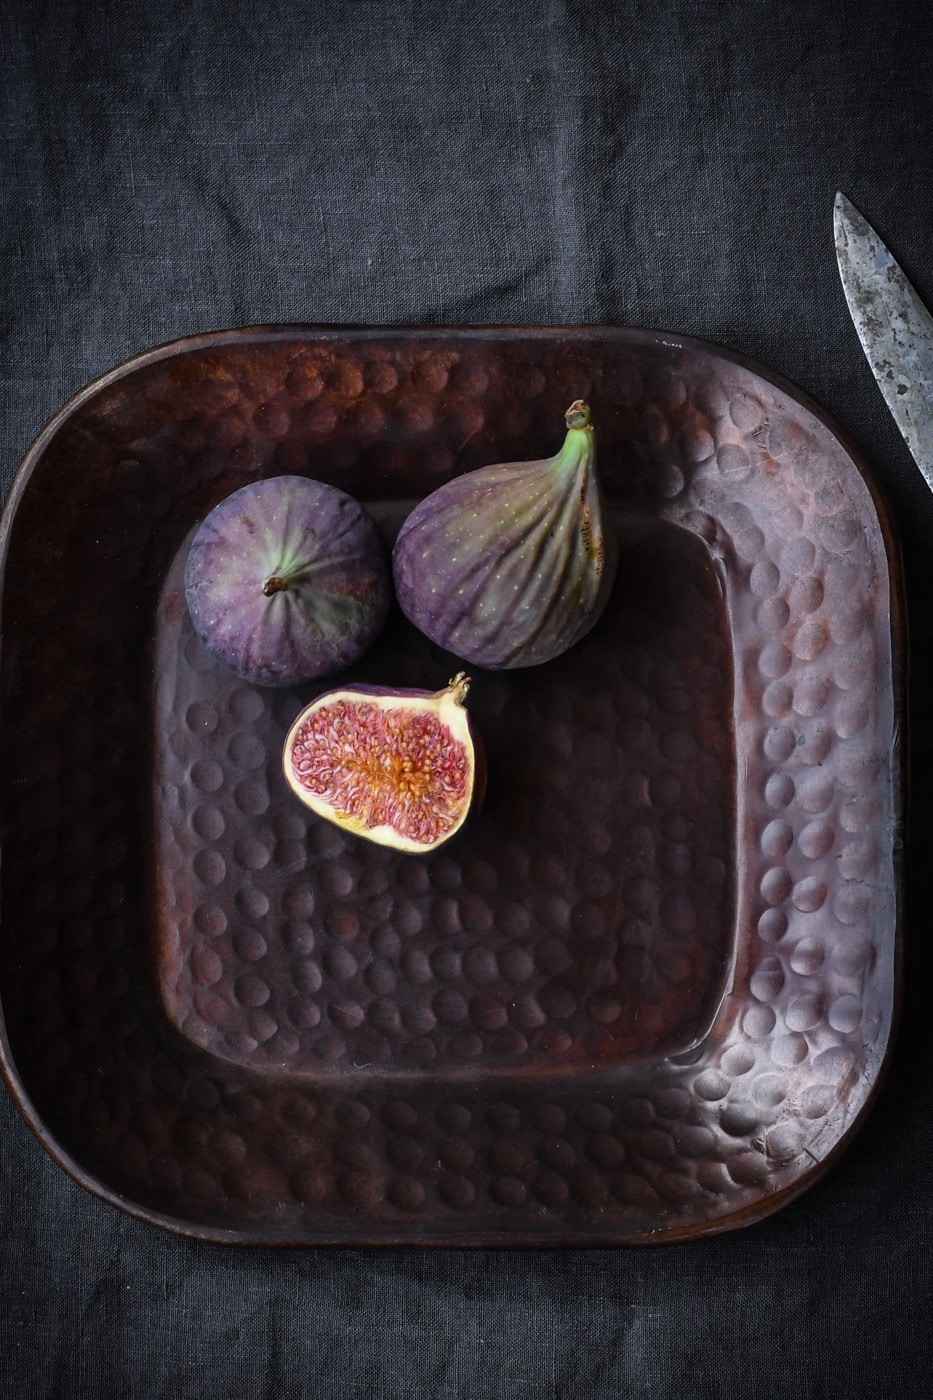 A handy square shaped tray, its the perfect size to hold small items by the bedside or an arrangement of collected objects on the coffee table. In fact, its so versatile it could be whipped out for parties to serve hors d\'oeuvre or to keep condiments together in the kitchen. Its beautiful hammered finish means it\'ll look good however you choose to use it!